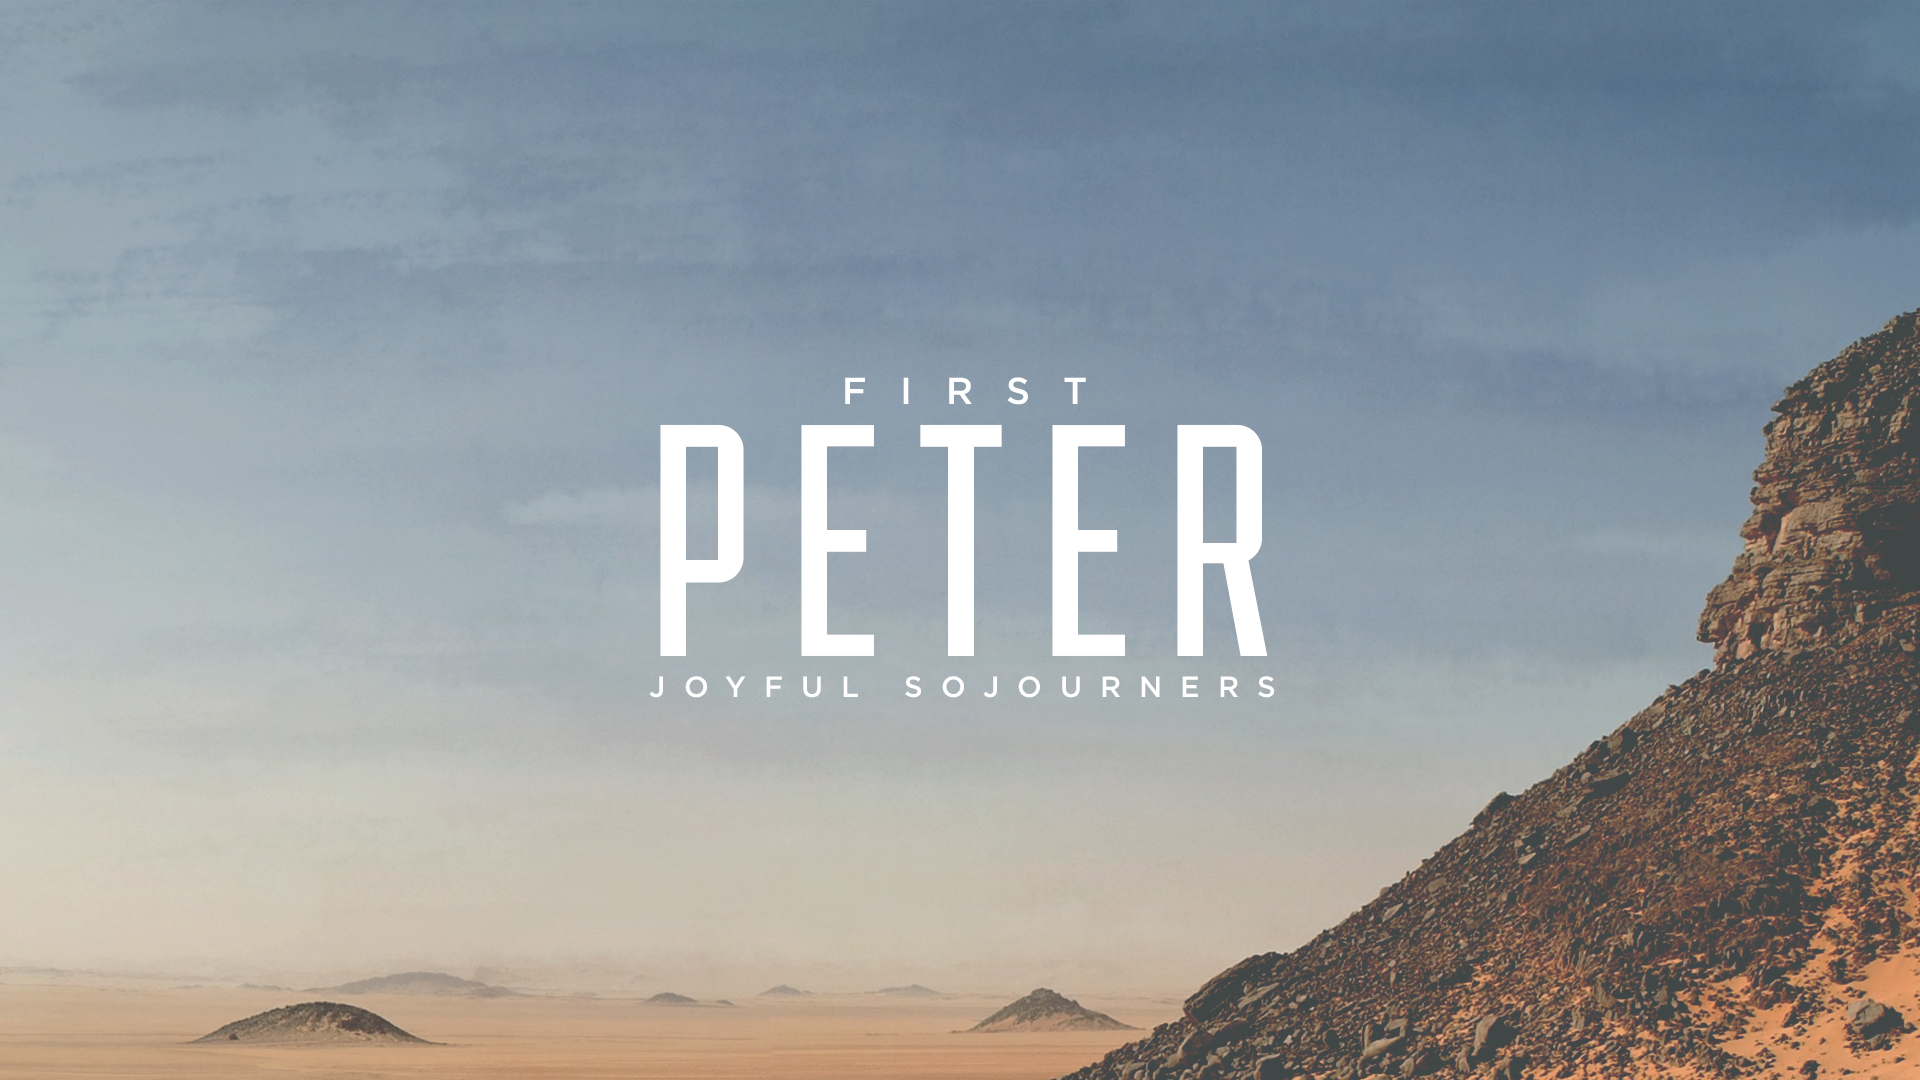 FirstPeter-Graphic-NoLogo.jpg